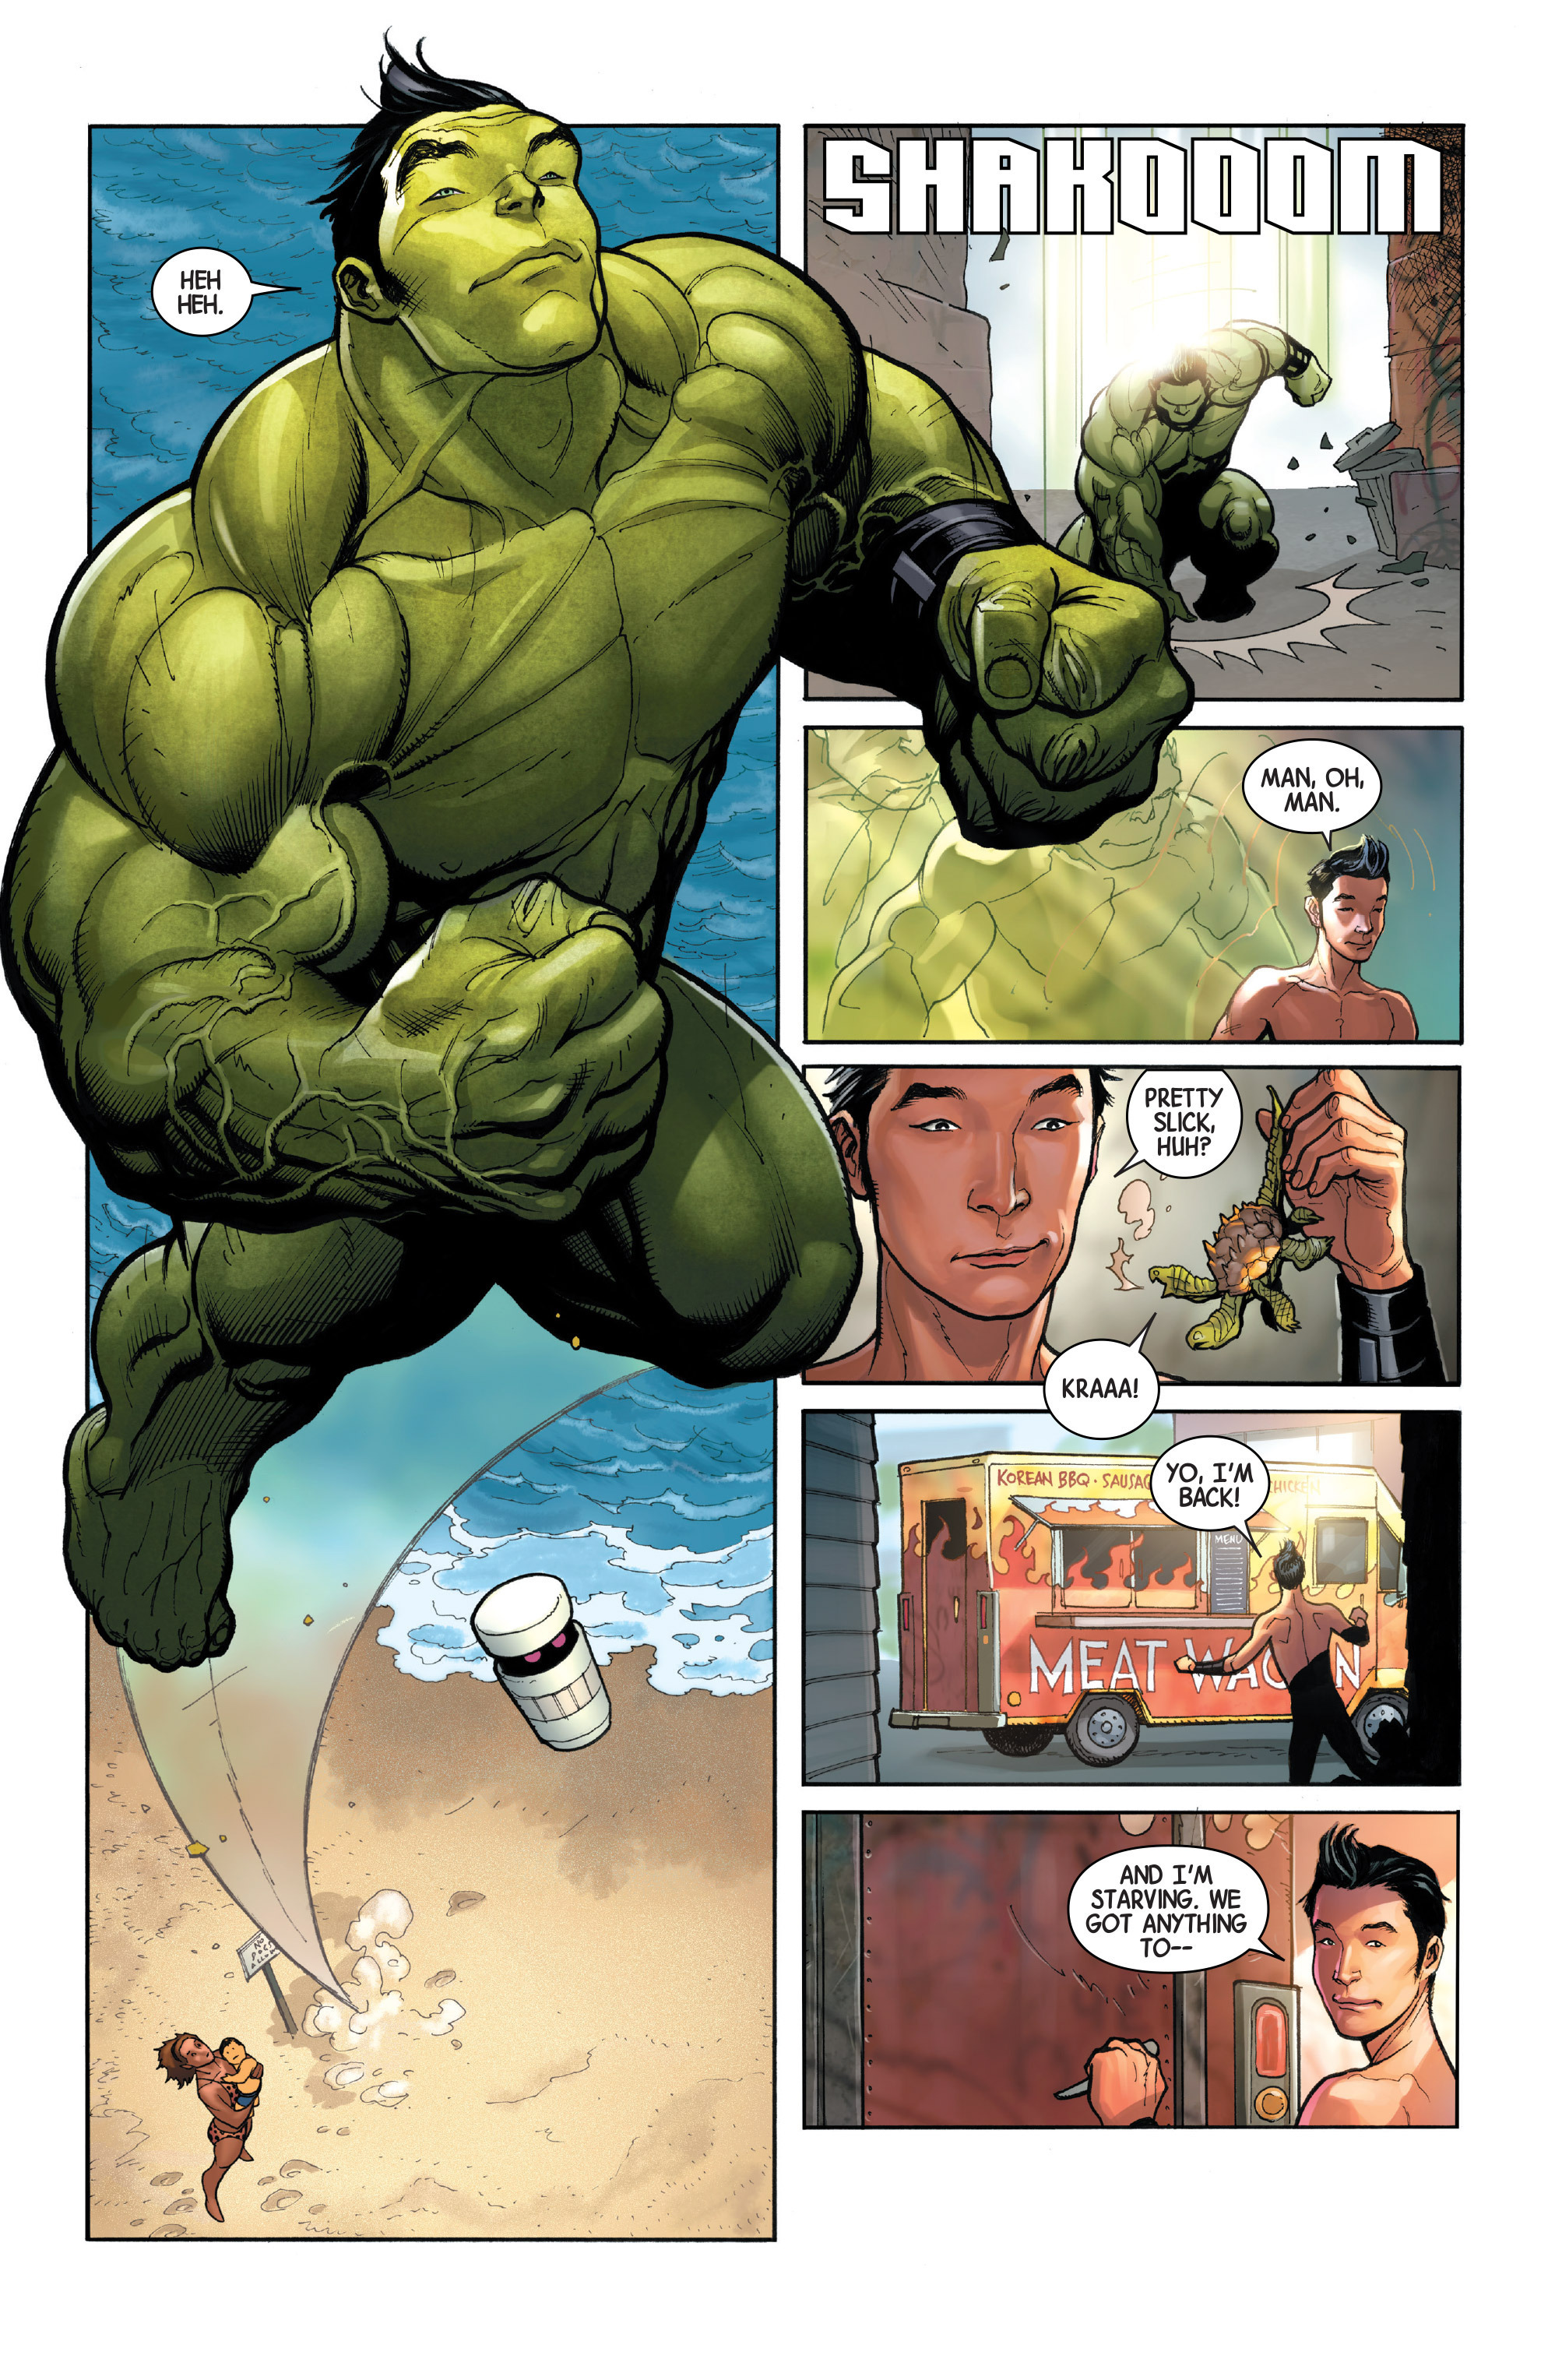 The totally awesome hulk 2016 1 read the totally awesome hulk the totally awesome hulk 2016 1 page 18 publicscrutiny Images